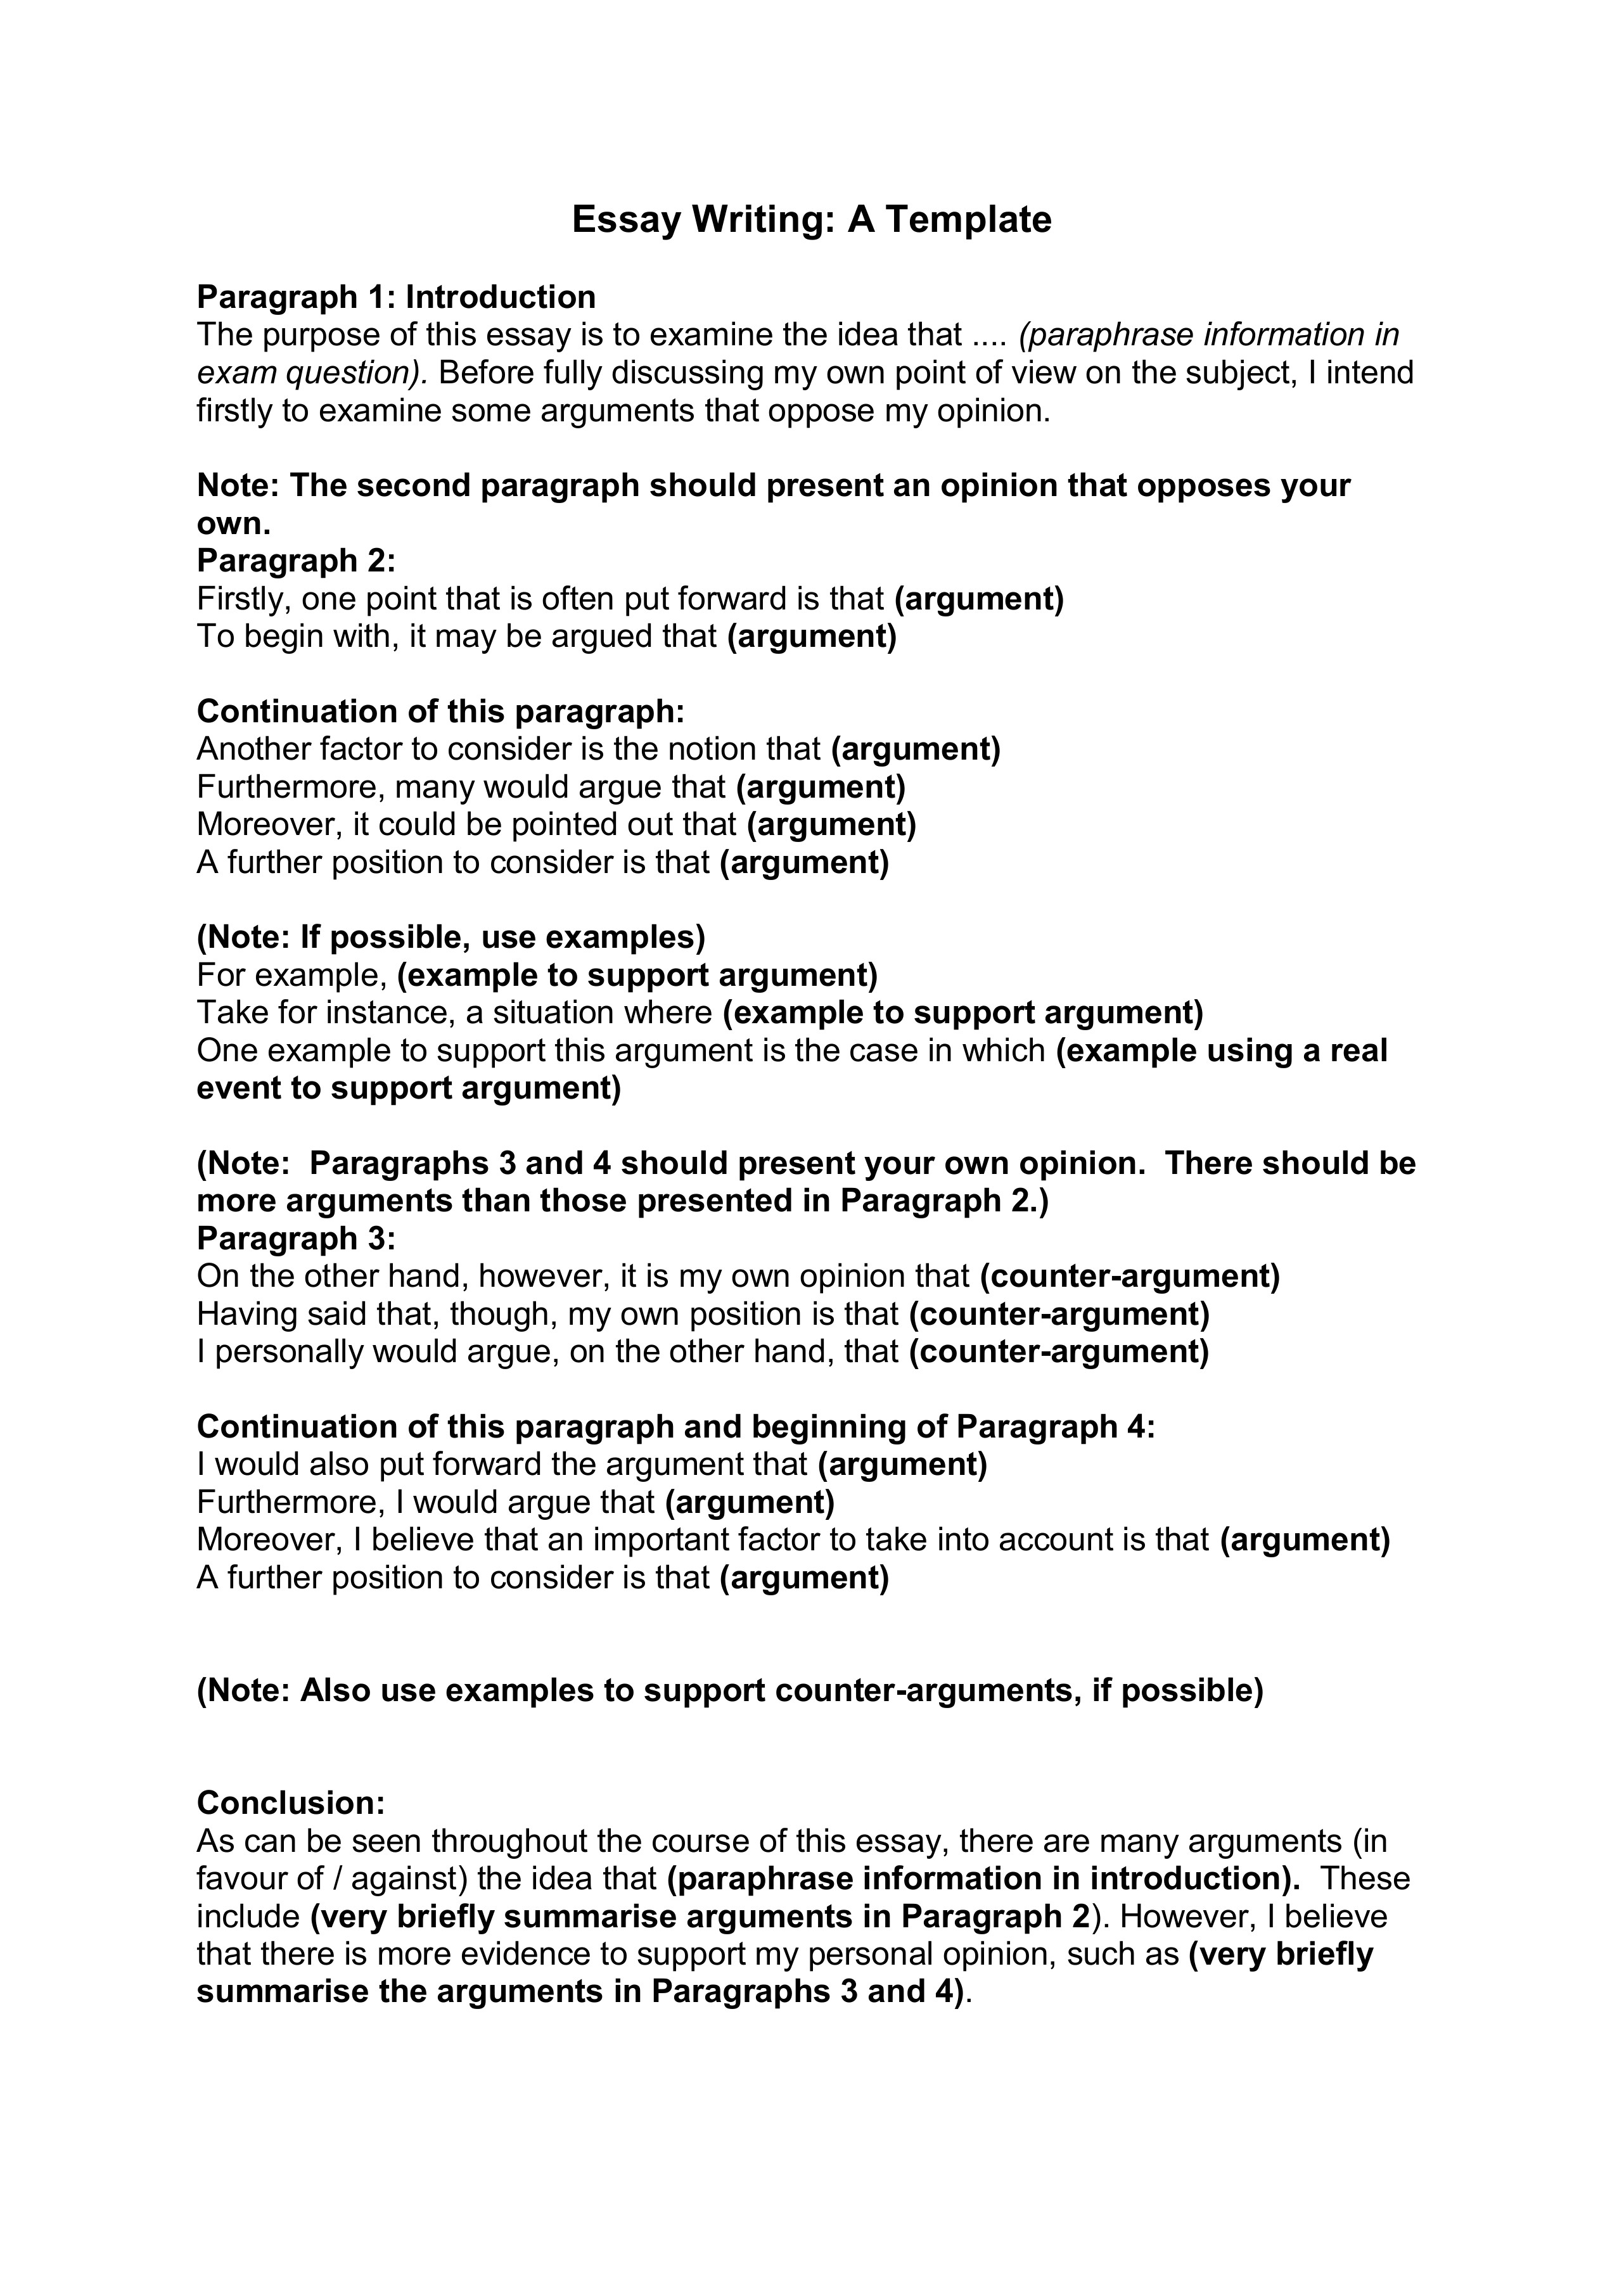 021 Order Of Research Paper Essay Writing Template For Part Breathtaking Reviews Making Examples Headings In A Full